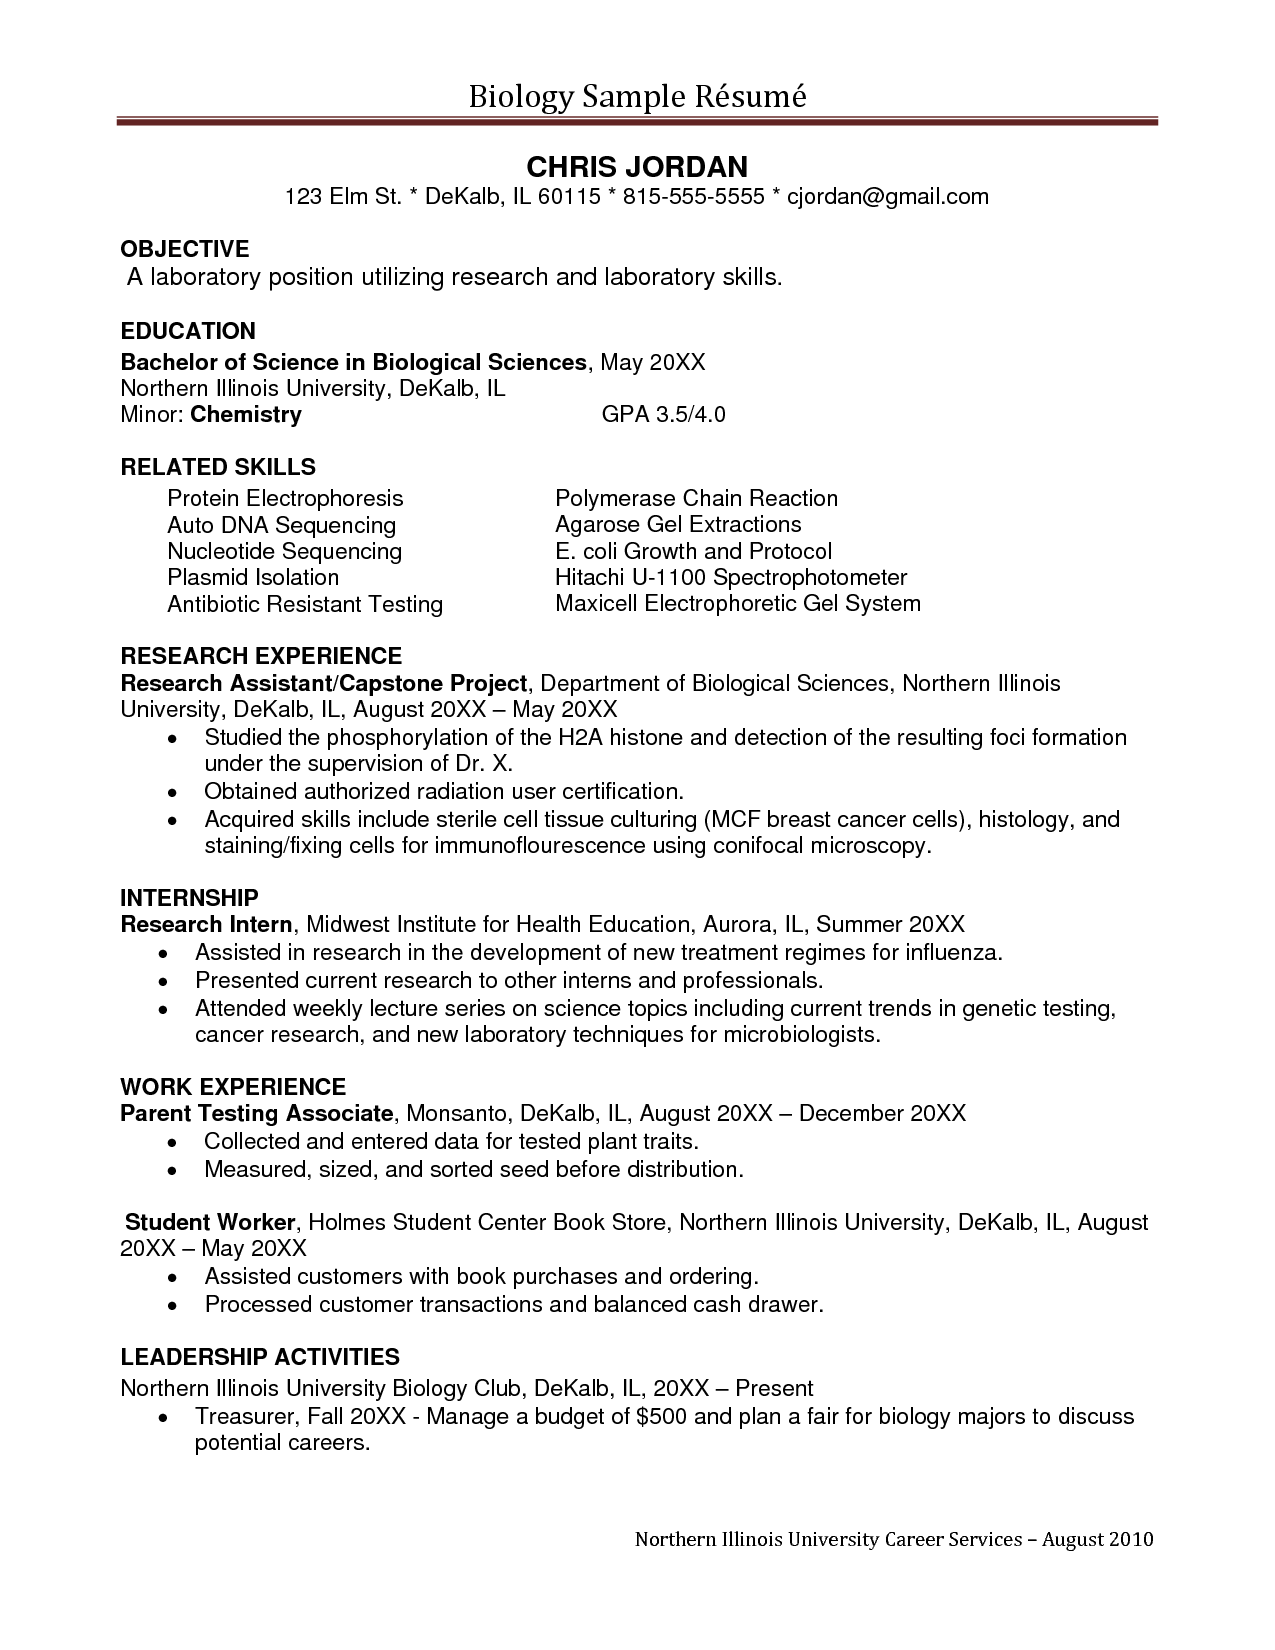 research assistant resume sample objective research assistant resume sample objective admin assistant objective resume sample - Administrative Assistant Resume Objectives